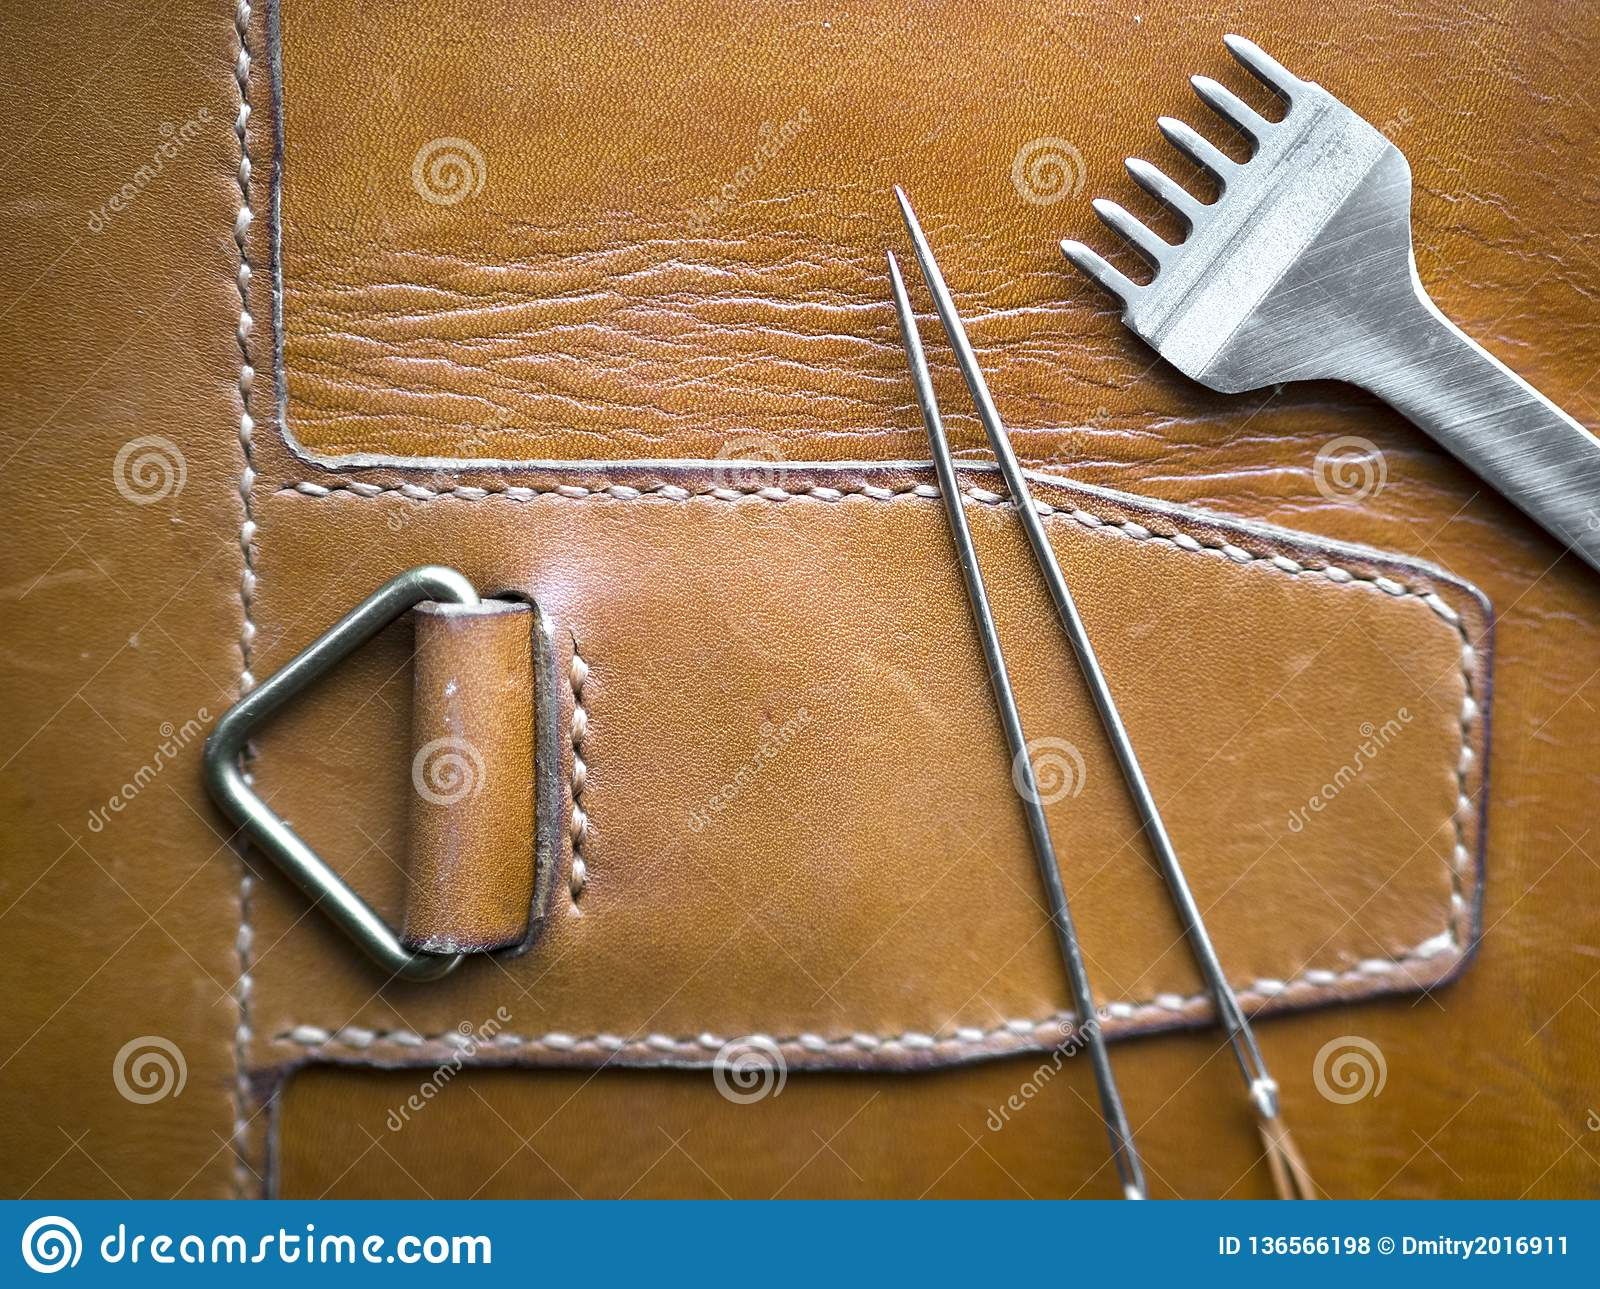 Leather Handmade Stitch Detail, Handcrafted Leather Goods